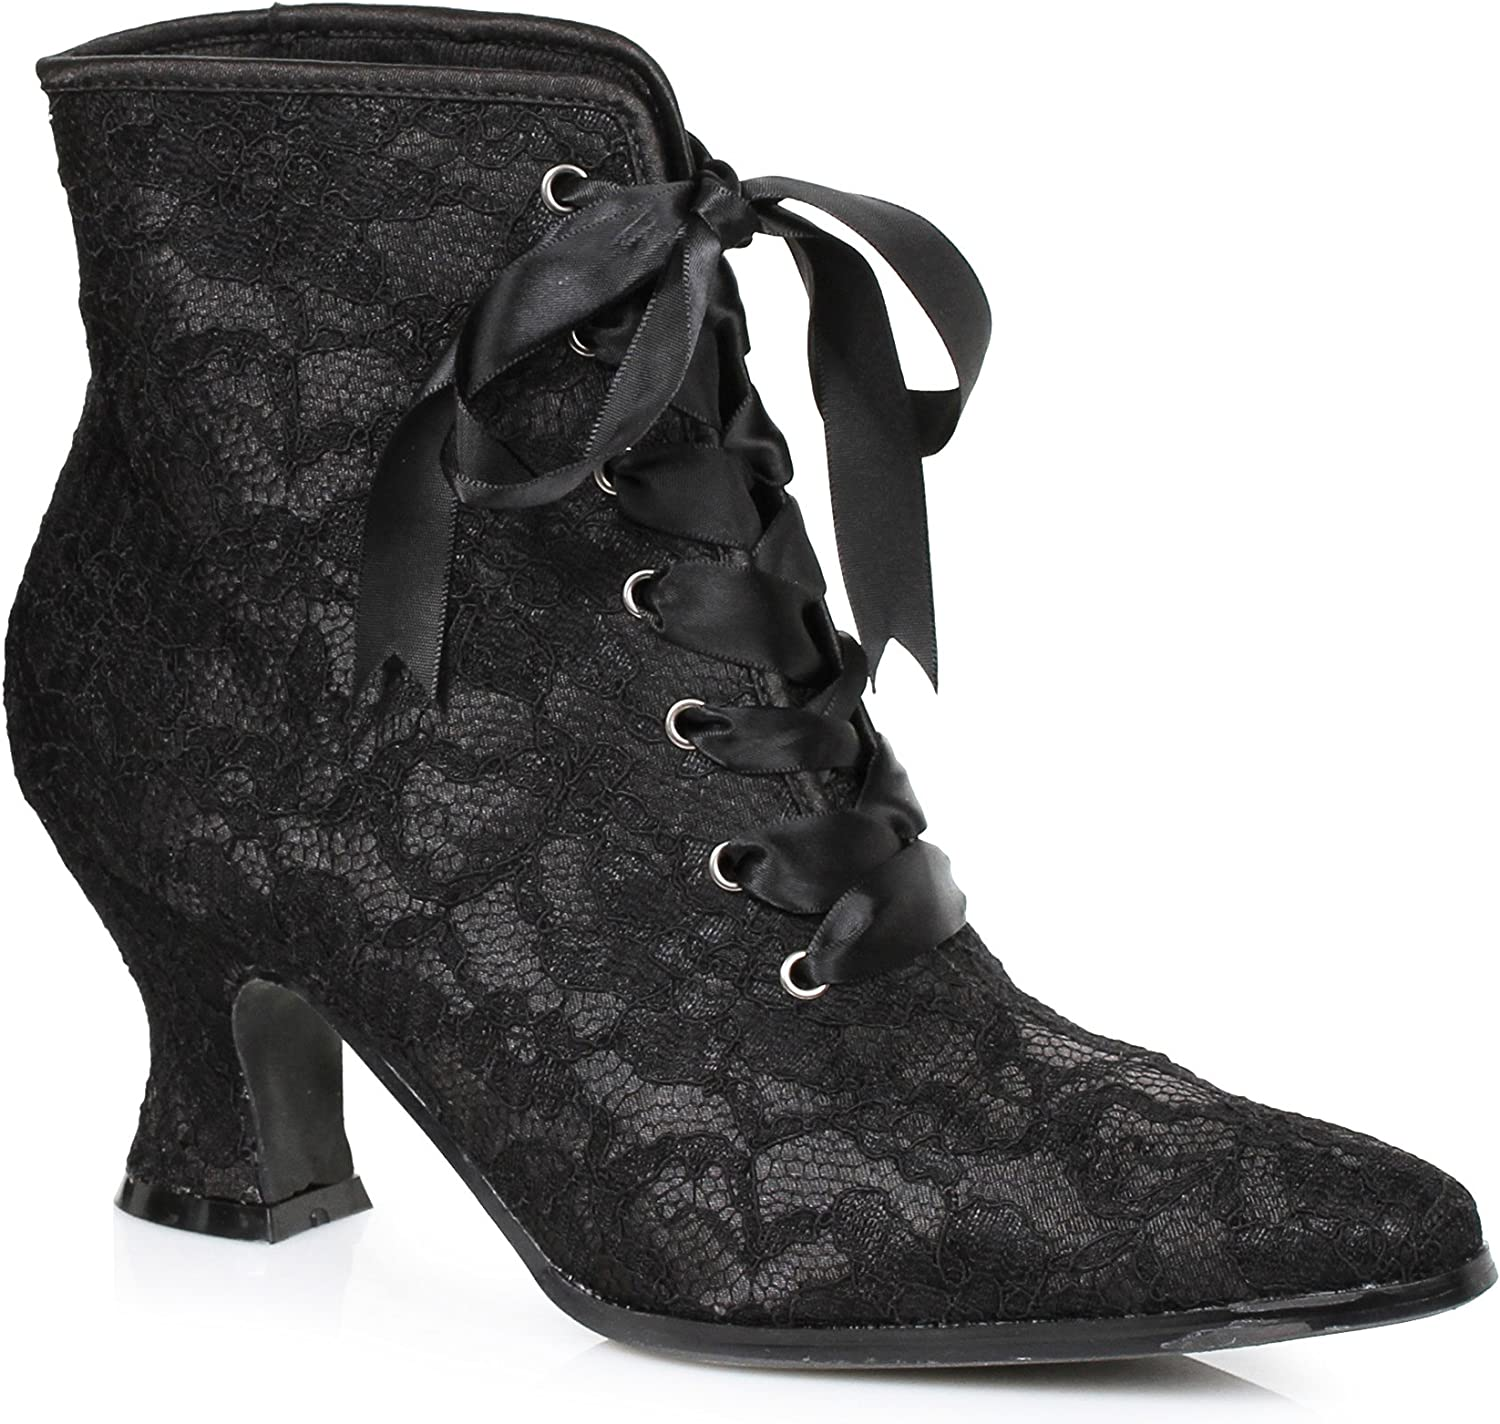 Black;Large Ellie Shoes 1.5 Heel Childrens Boot with Lace